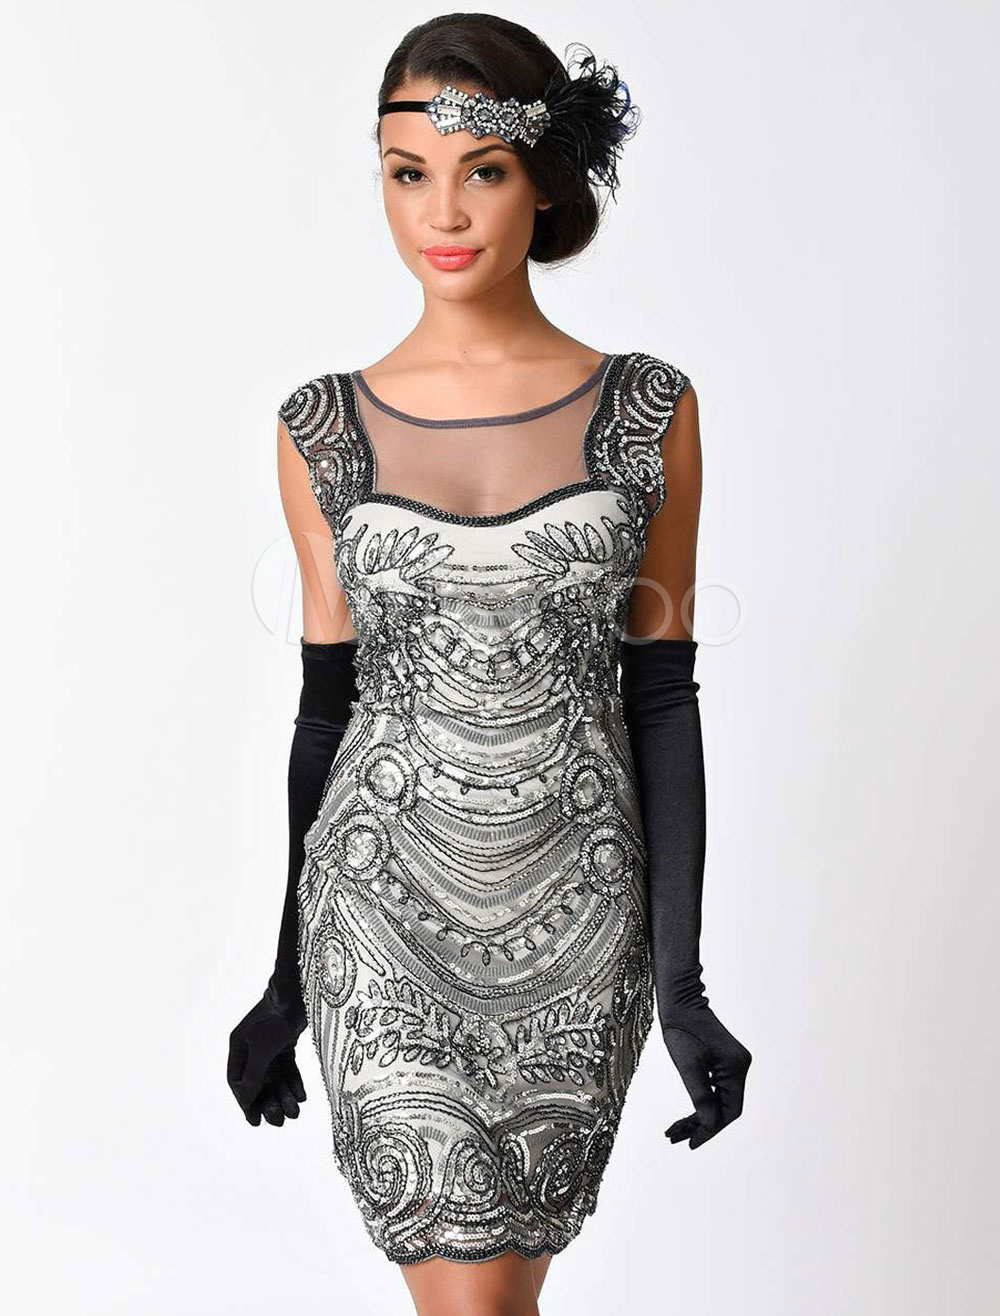 6eea8dab4e7 ... Great Gatsby Halloween Flapper Dress Costume 1920s Women s Vintage Dress-No.6.  12. 40%OFF. Color Black